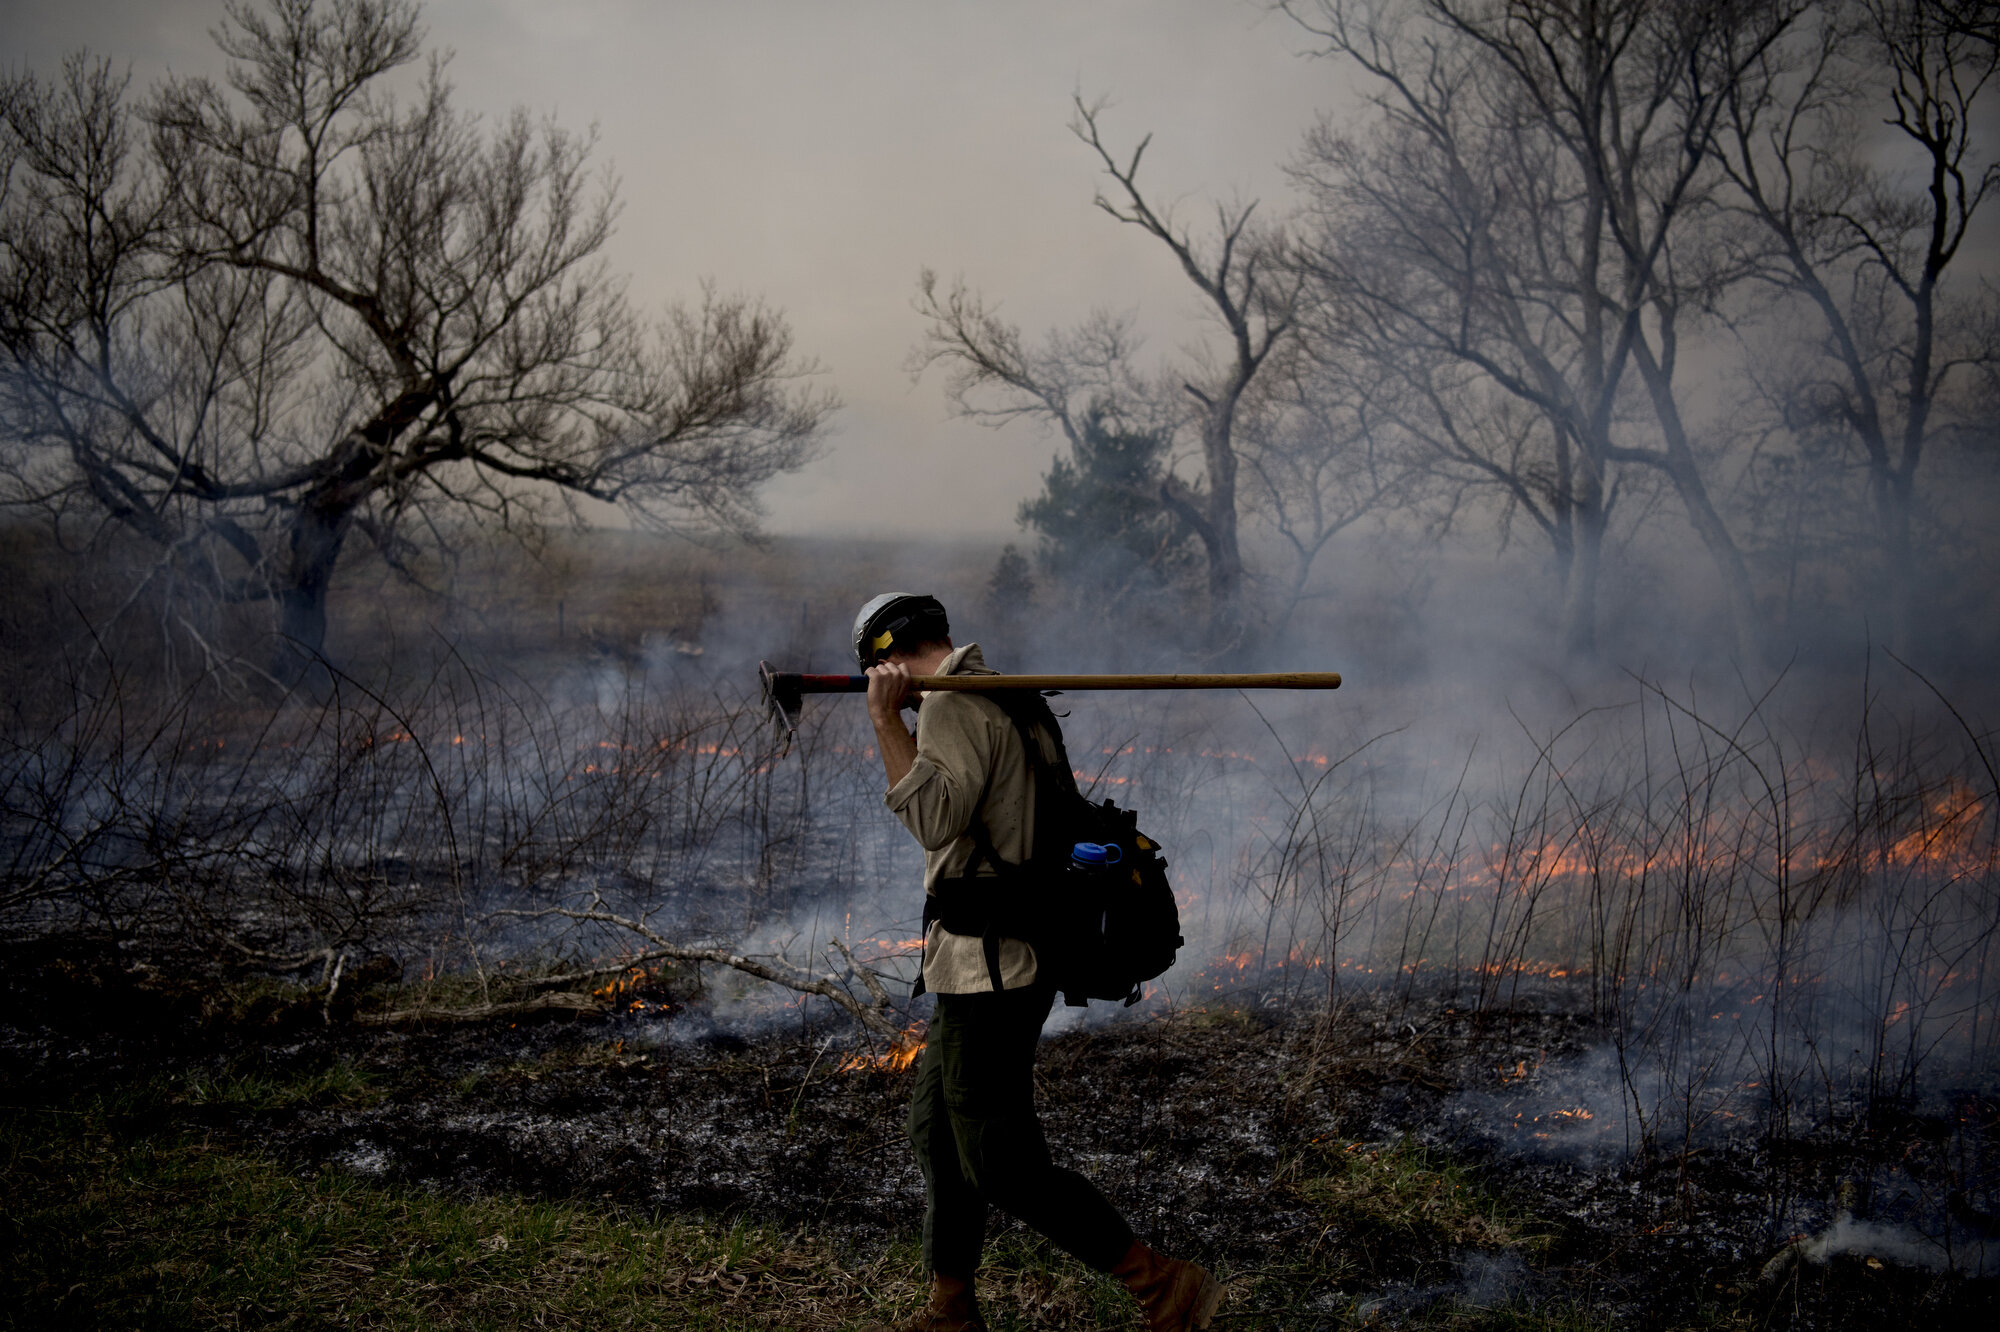 Jon Freeman, with Great Smoky Wildland Fire Module, monitors the behavior and direction of the fire during a prescribed burn in Cades Cove in Great Smoky Mountains National Park. Crews were burning roughly 440 aces to reduce shrub and tree intrusion, exotic plant species invasion and help maintain open meadows critical to the habitat of native wildlife.